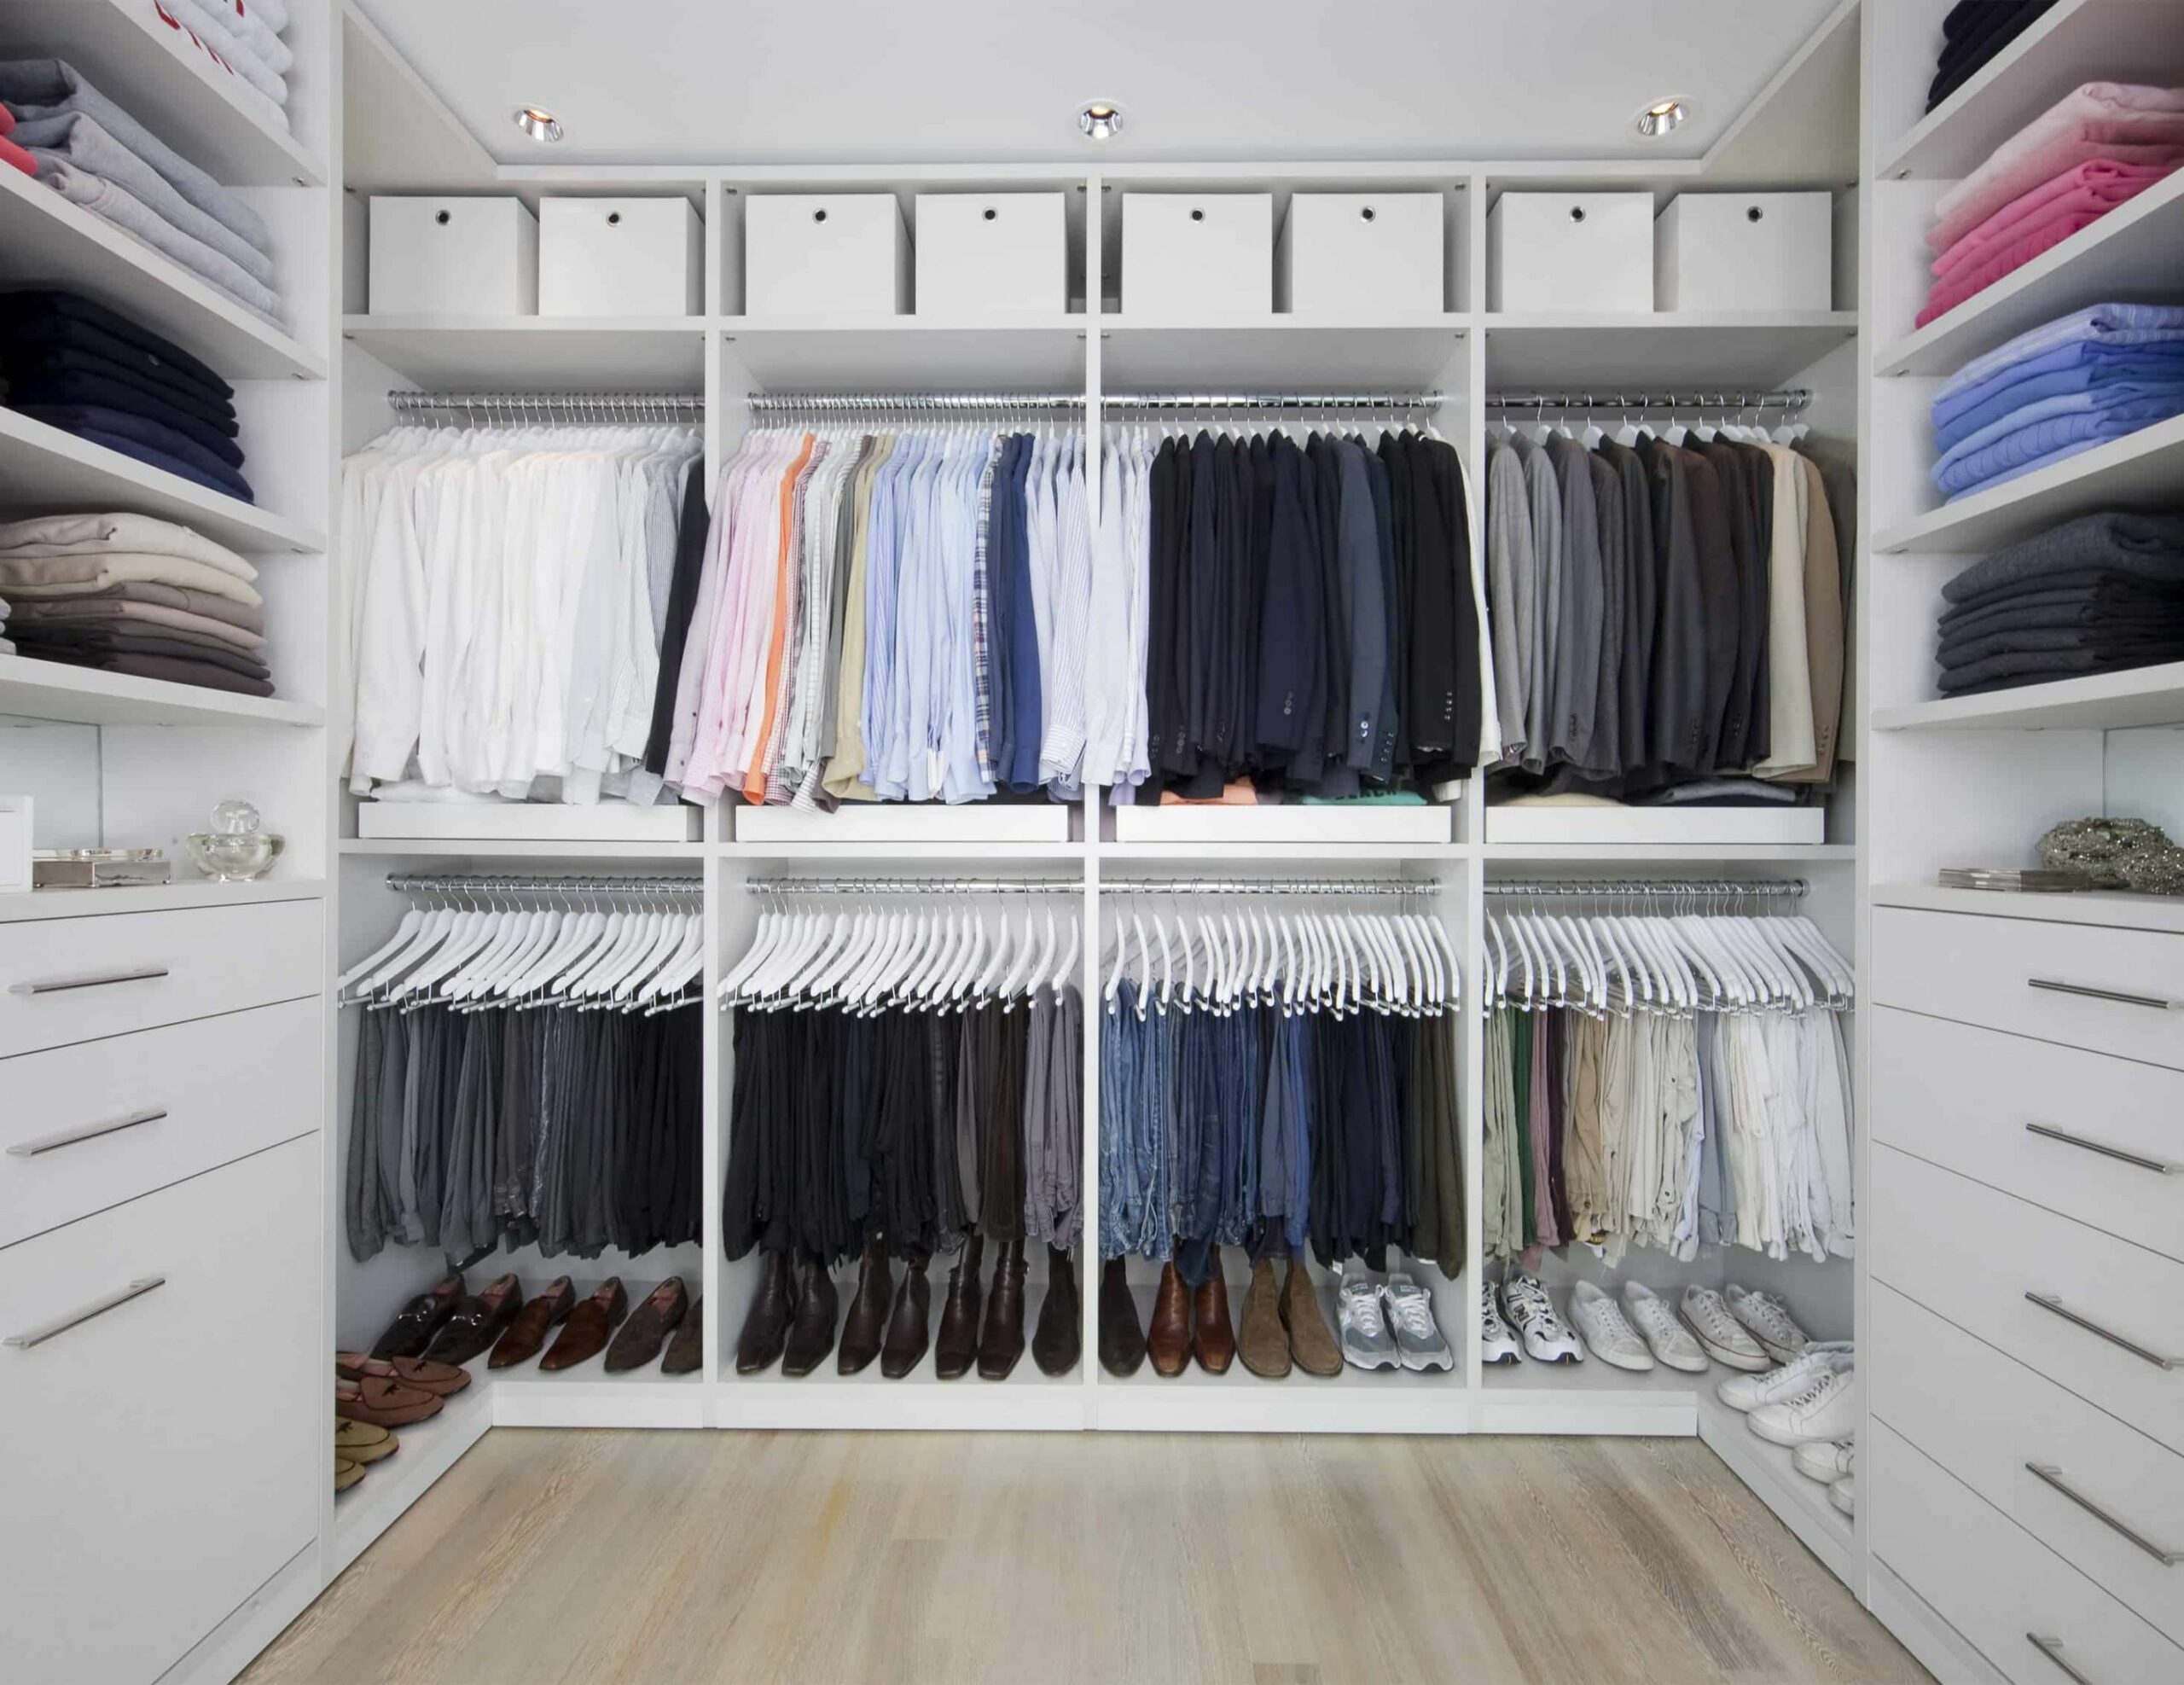 Closet organization ideas to help you get the most out of your space - closet hanging ideas